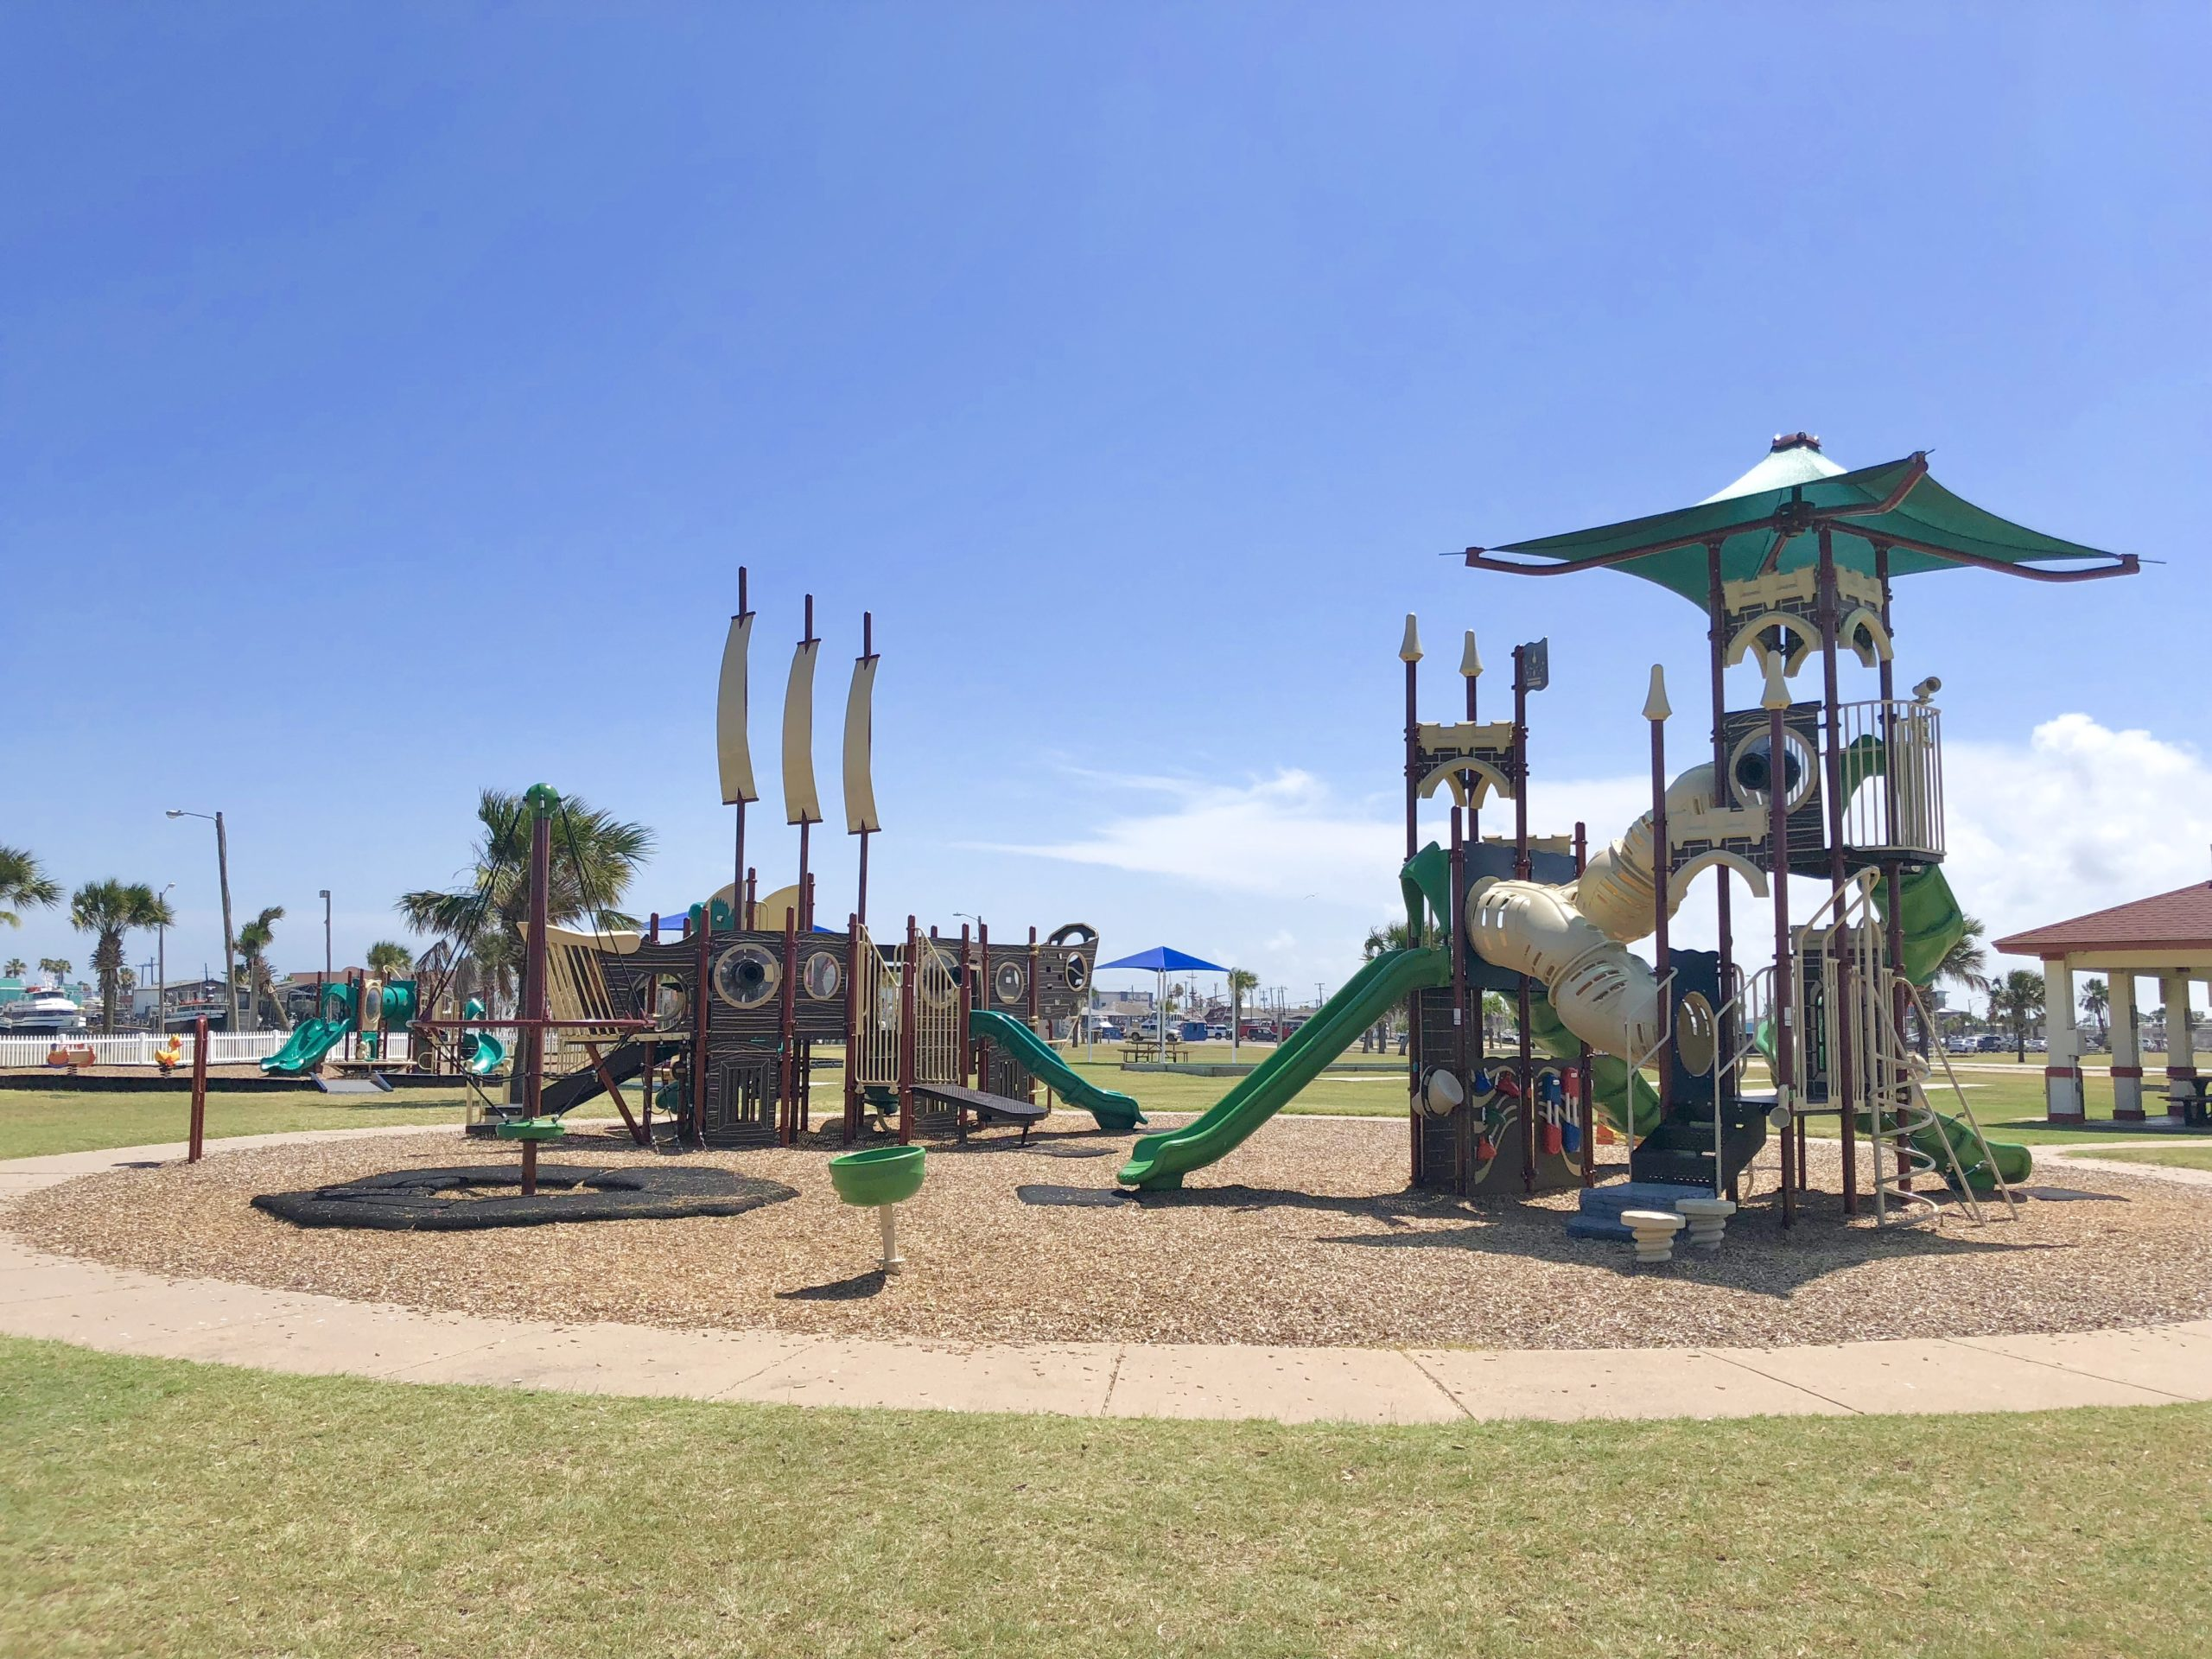 Playground at Roberts Point Park in Port Aransas | www.portaransastex.com